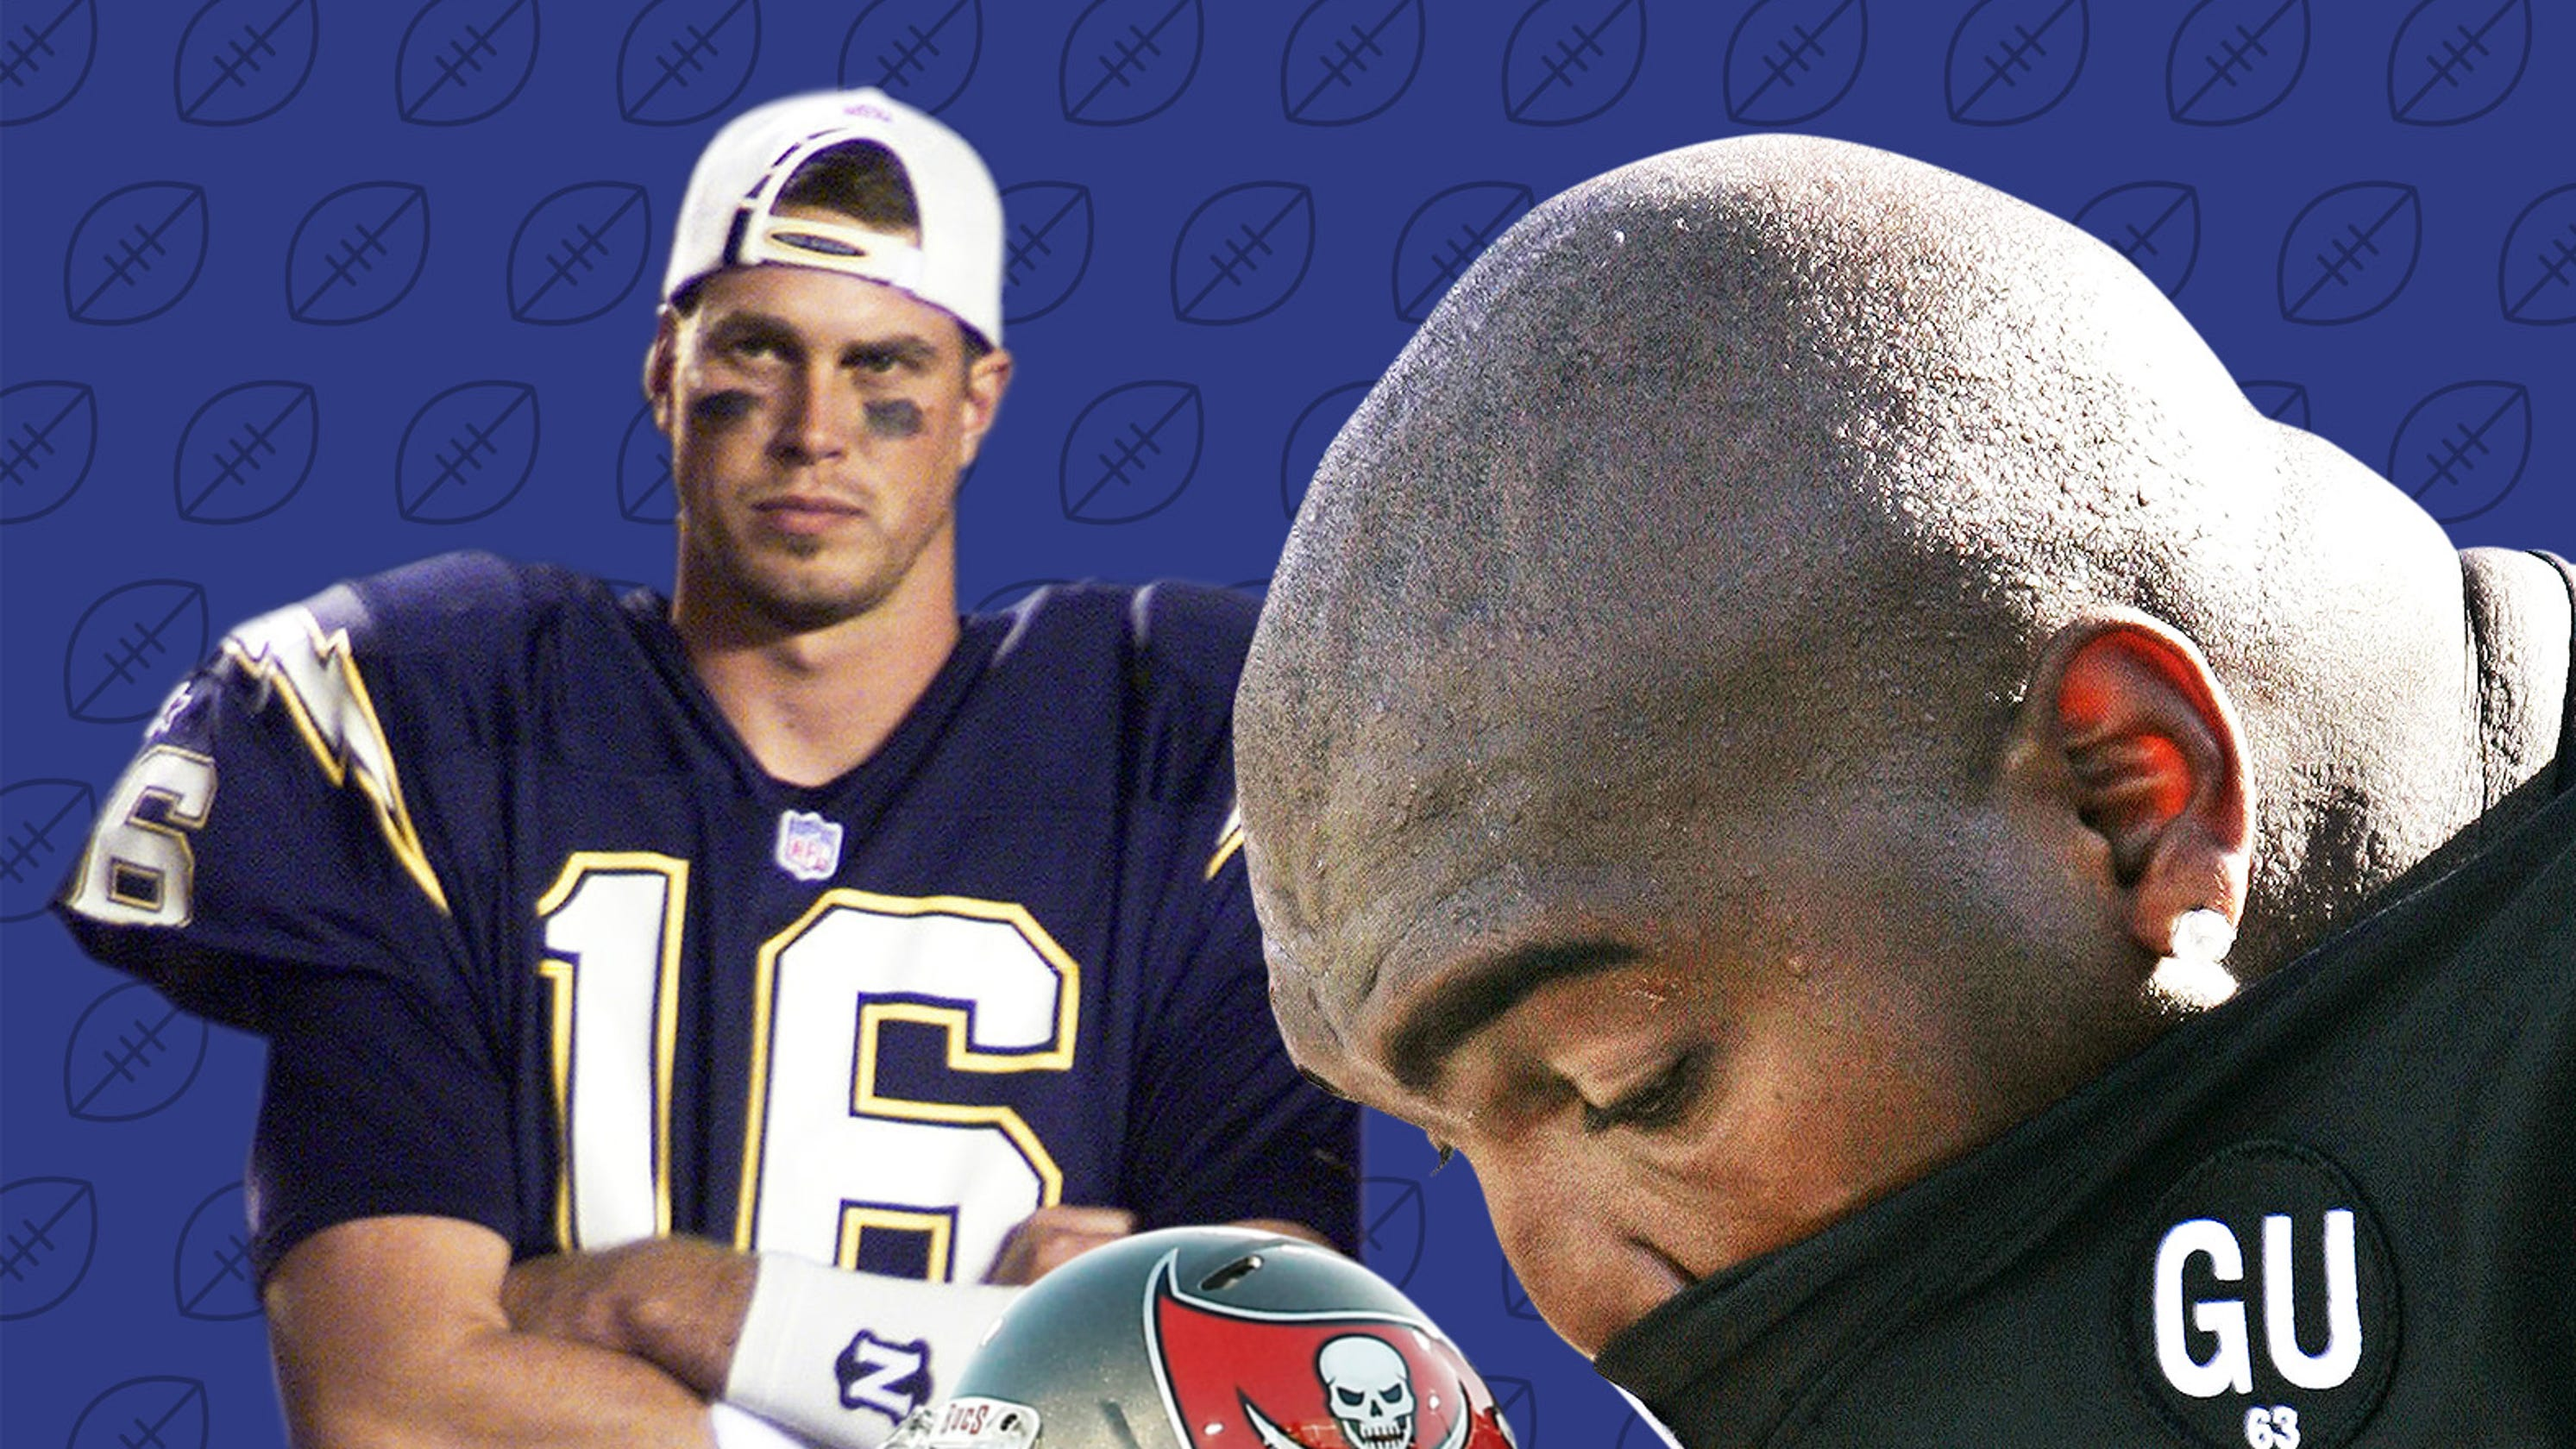 reputable site 84165 d830d NFL draft busts  100 worst picks, trades ever in league history